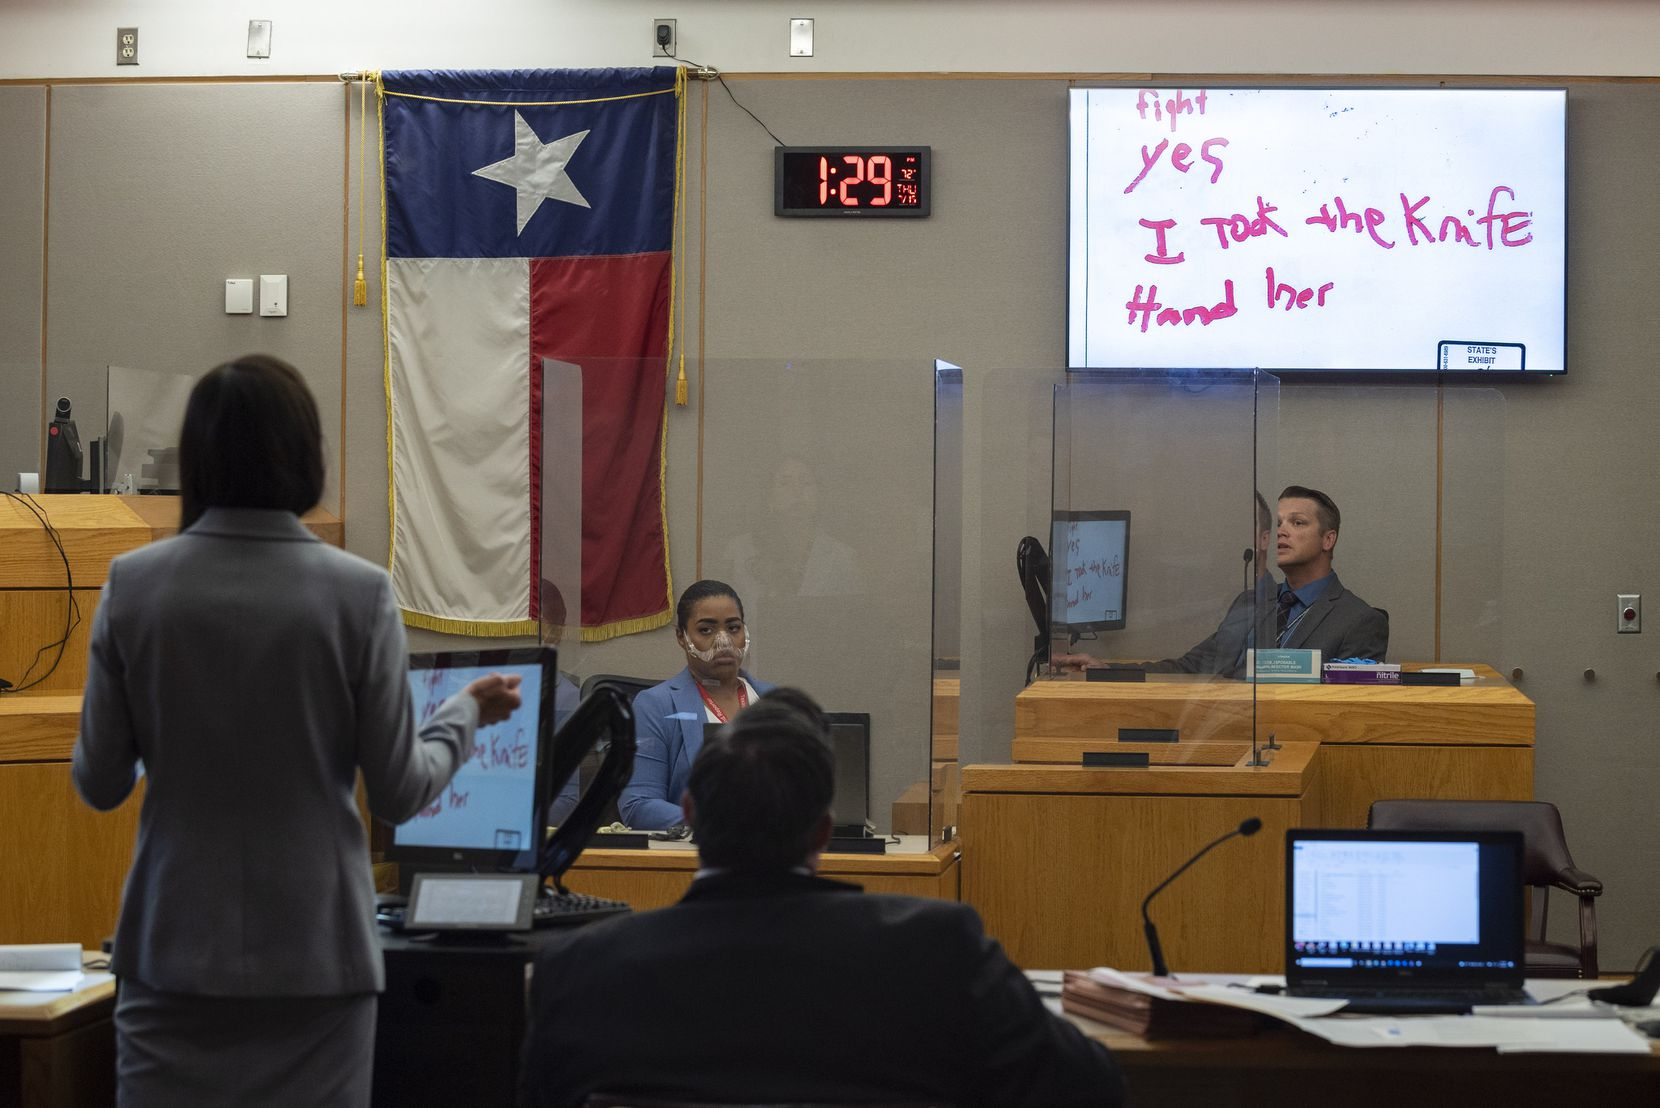 """Cedar Hill Police Detective Adren Allen testifies during the murder trial of Curtis Bullock inside the 256th District Court with Judge Jennifer Bennett at the Frank Crowley Criminal Courts Building in Dallas, on Thursday, July 15, 2021. The hand writing shown on the screen inside the court room is that of Curtis Bullock having a conversation with the detective. Bullock told Detective Adren, """"I took the knife."""""""